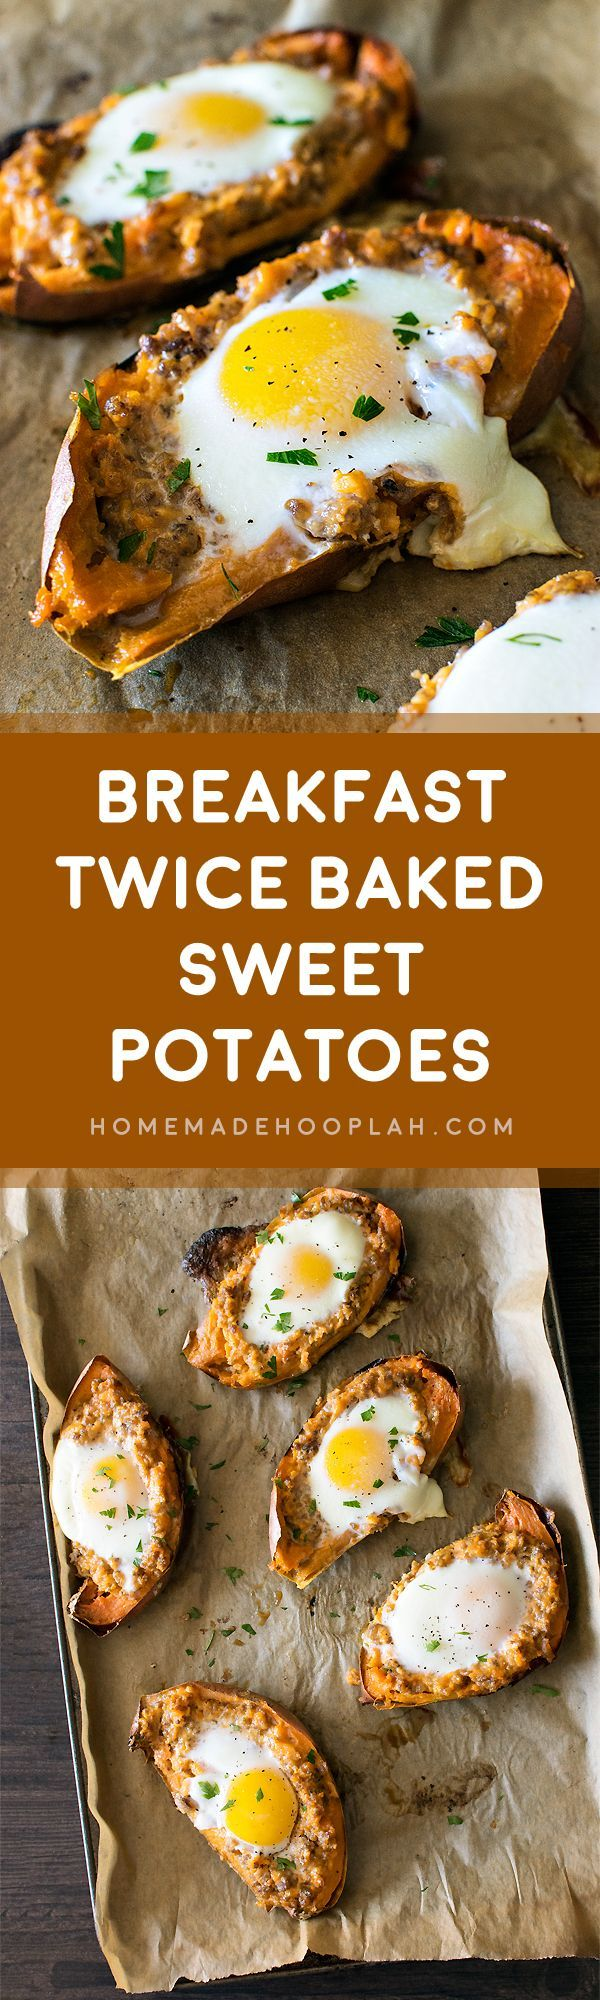 Breakfast Twice Baked Sweet Potatoes! Have the taste of fall all year round! Flavorful breakfast sausage in twice baked sweet potatoes and topped with an over easy egg. | HomemadeHooplah.com